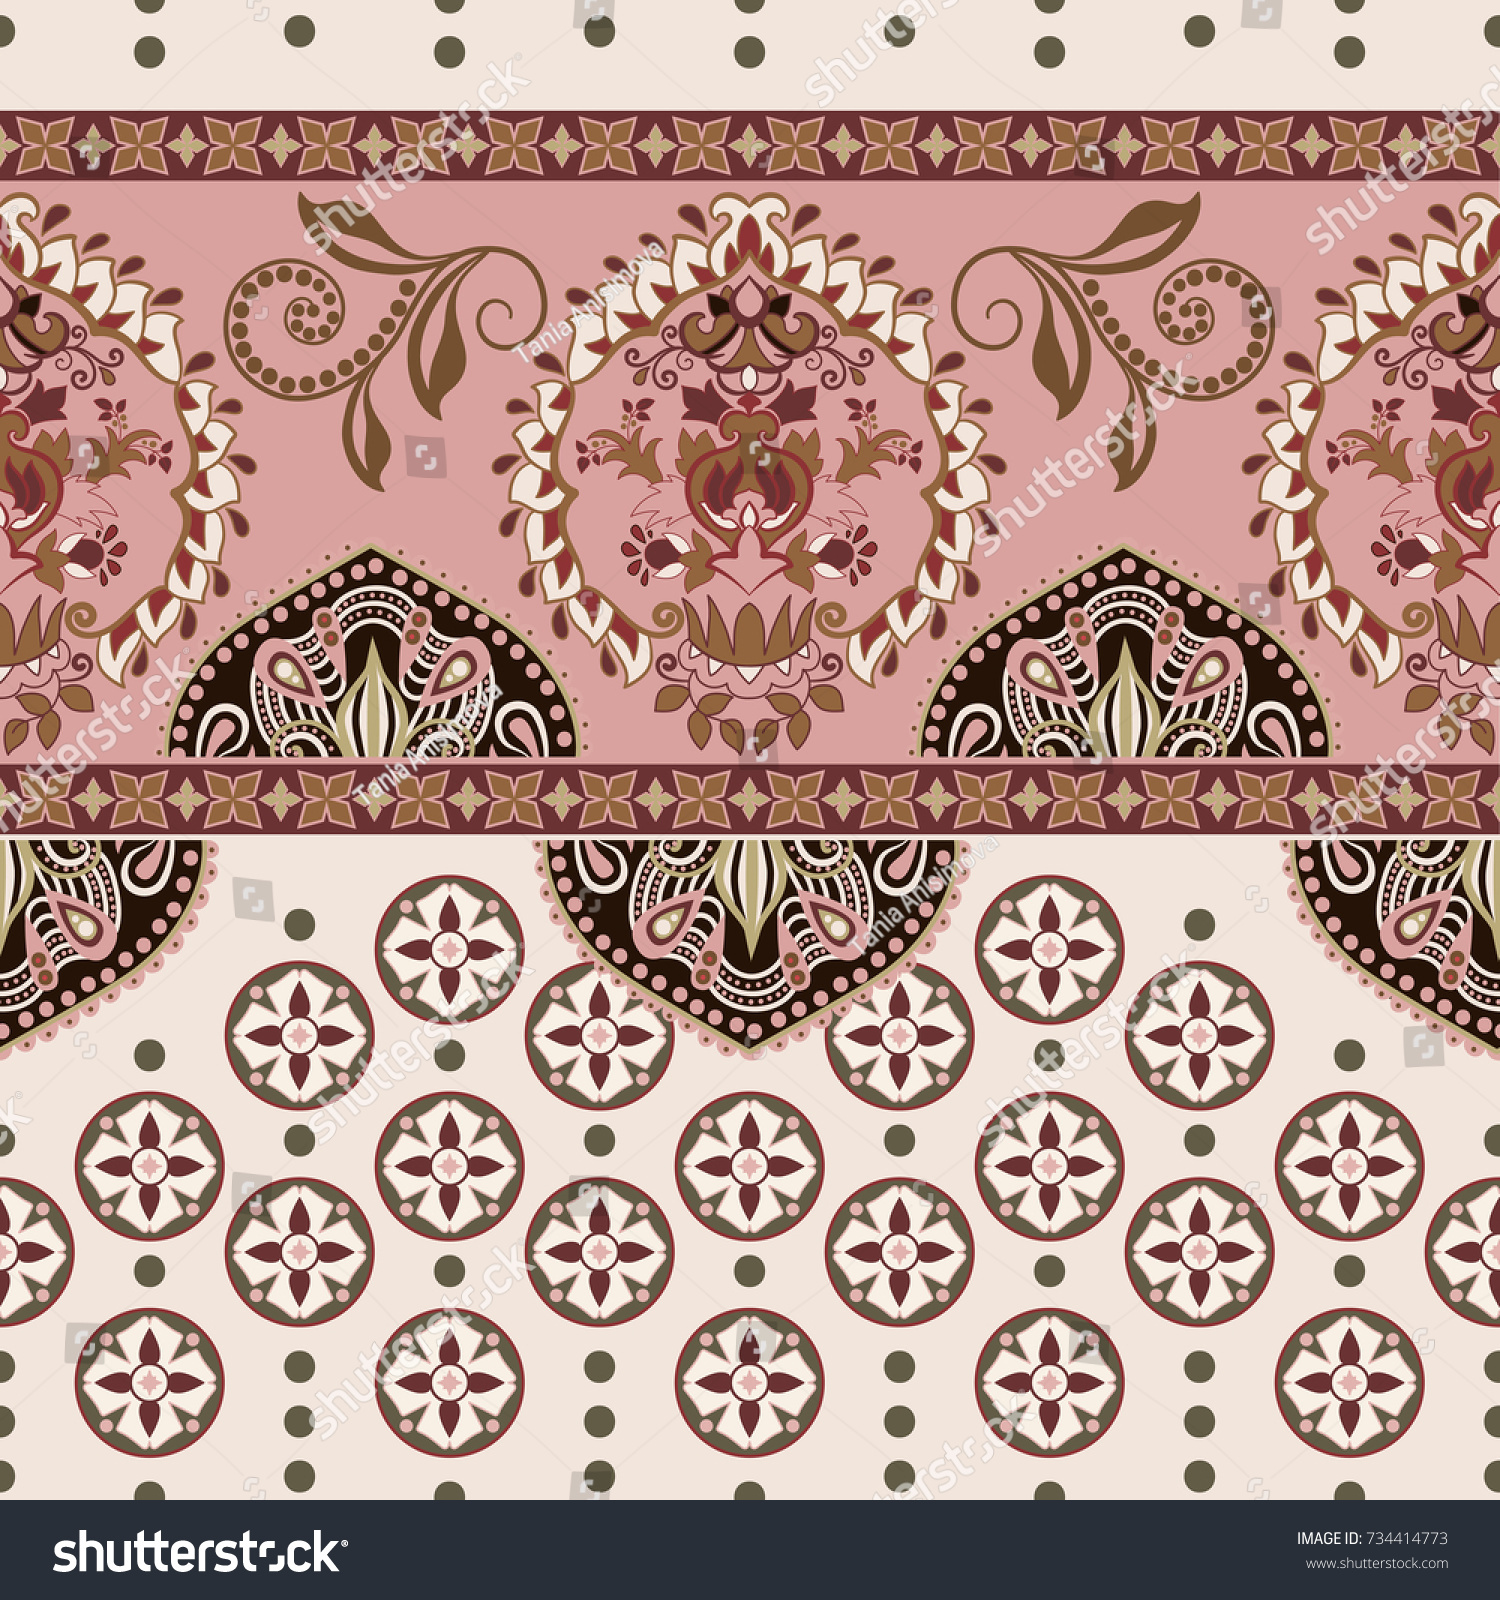 Vector seamless border with decorative ethnic elements. Moroccan style. Pink horizontal arabian pattern with decorative elements. Design for home decor, wrapping paper, fabric, carpet, cover #734414773